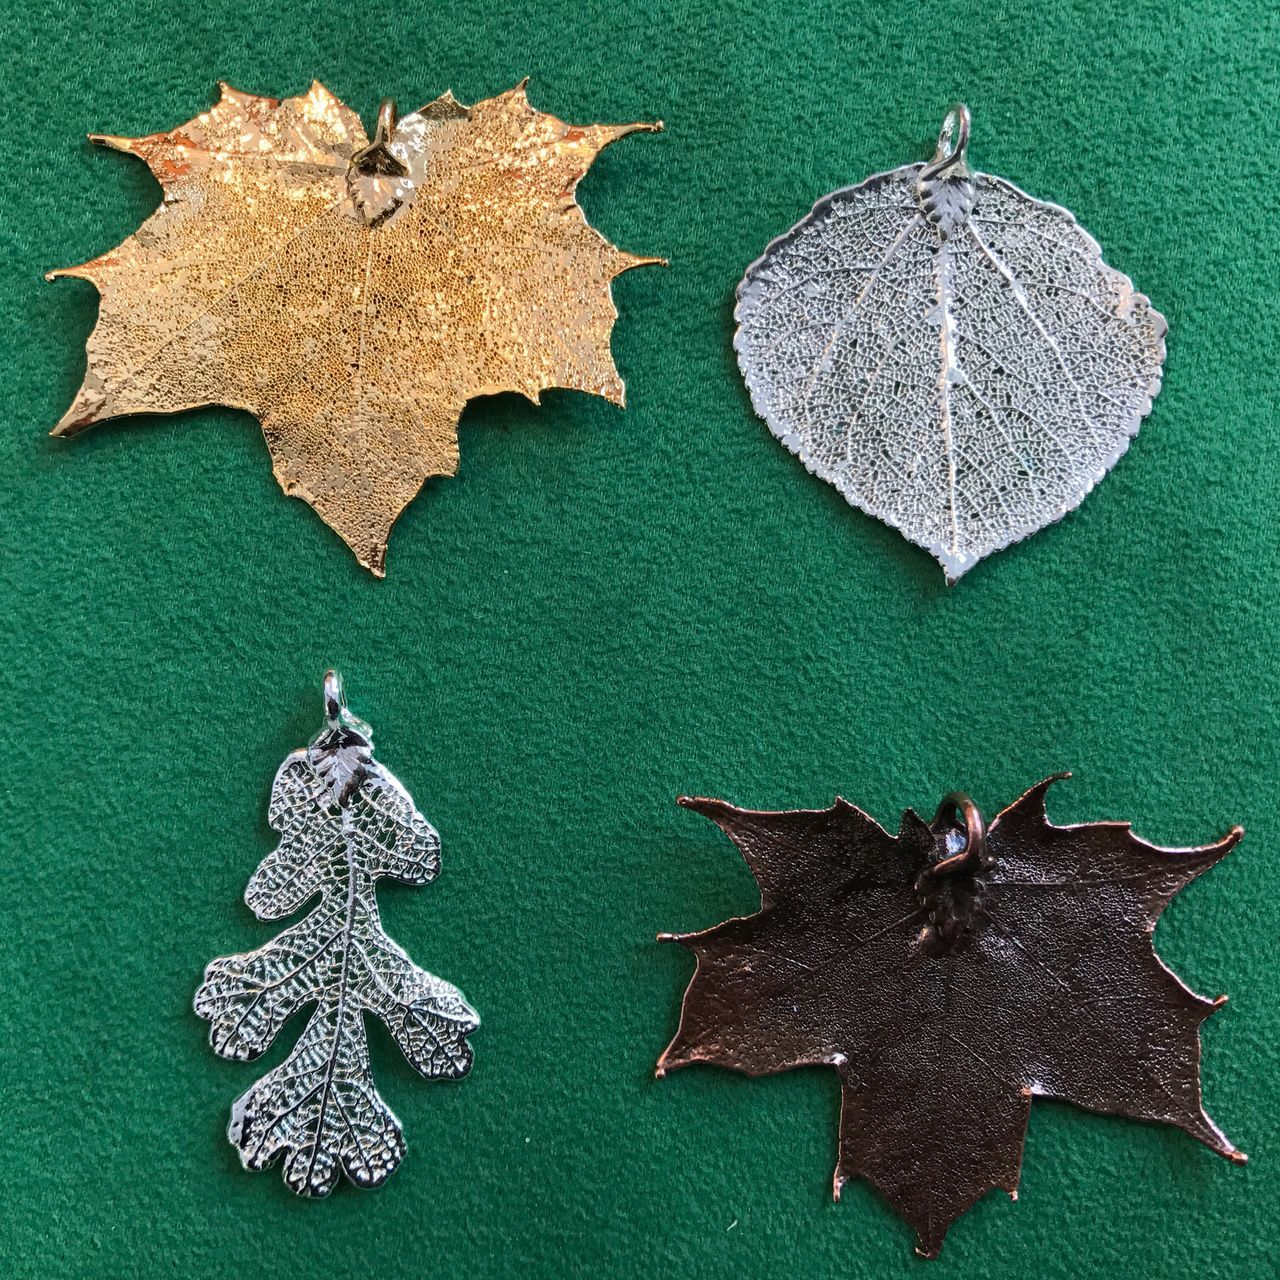 Leaves🌿 Never Dying Leaf Gold Leaf Silver Leaf Copper Leaf Oak Tree Leaf Maple Leaf Aspen Leaf